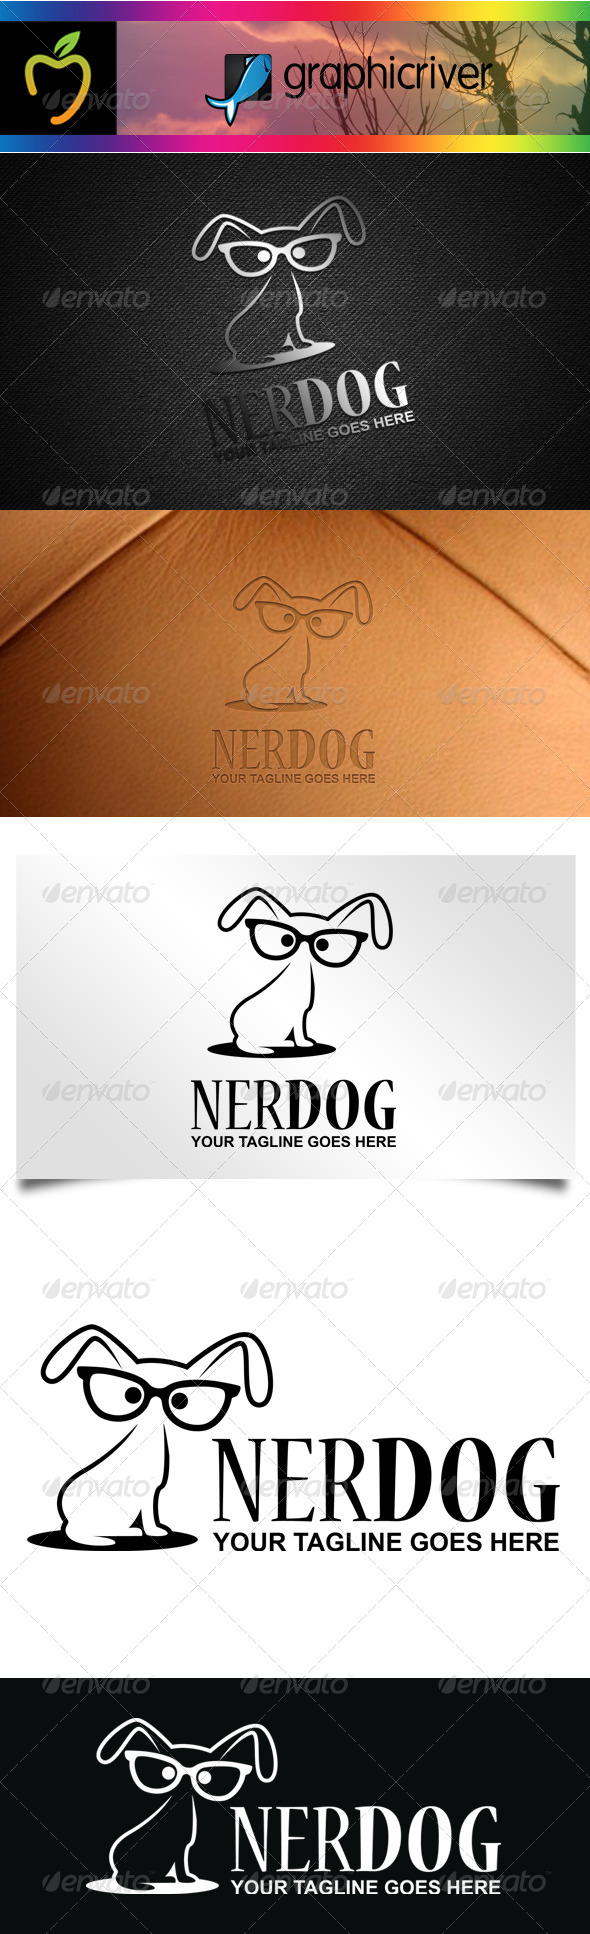 GraphicRiver Nerd Dog Logo 7600835